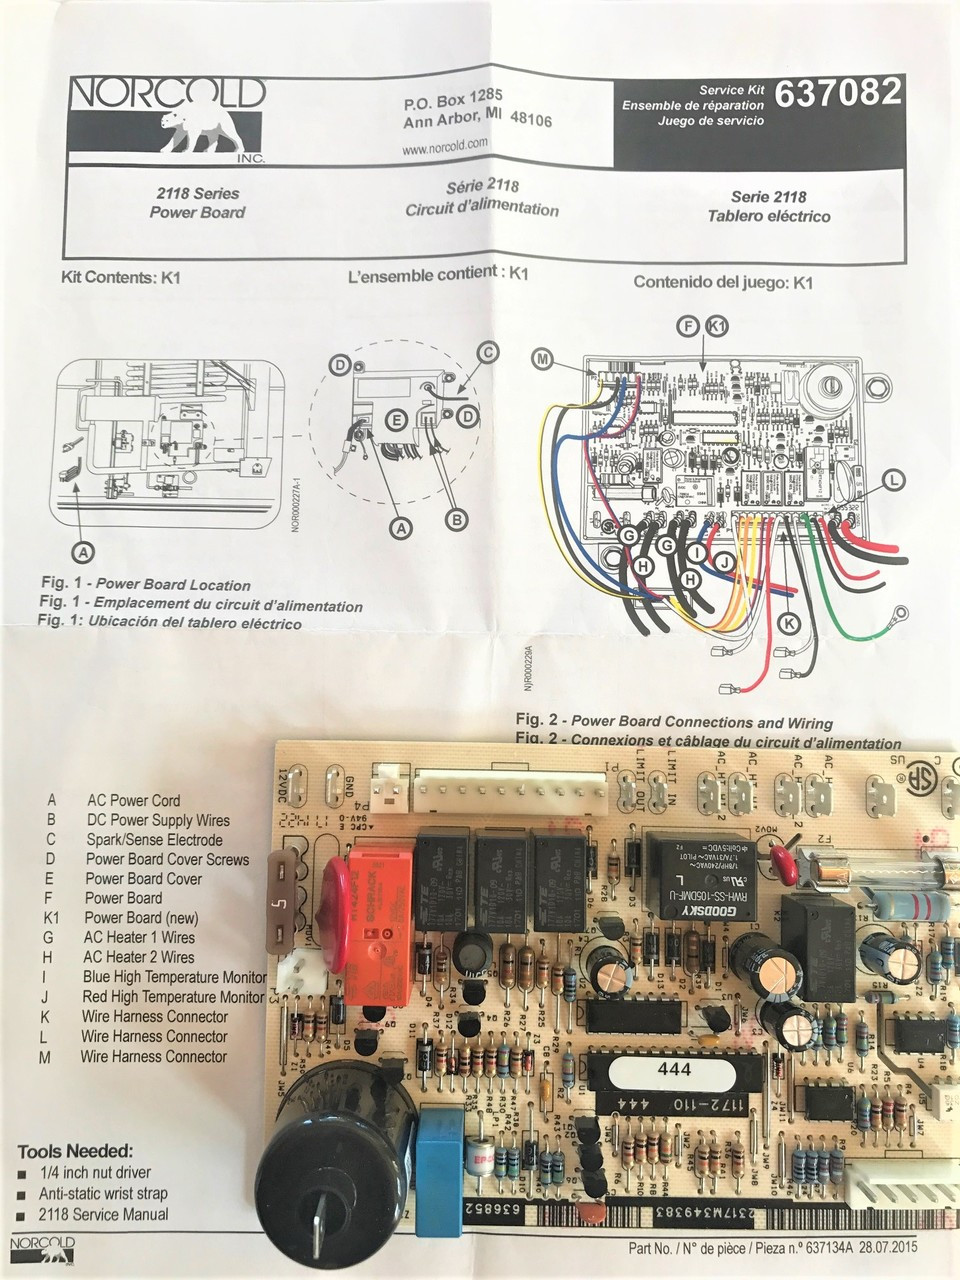 IMG_0059_2__66296.1504279223.1280.1280?c=2 norcold model n621 rv refrigerator wiring diagram norcold 1200 norcold power board wiring diagram at crackthecode.co